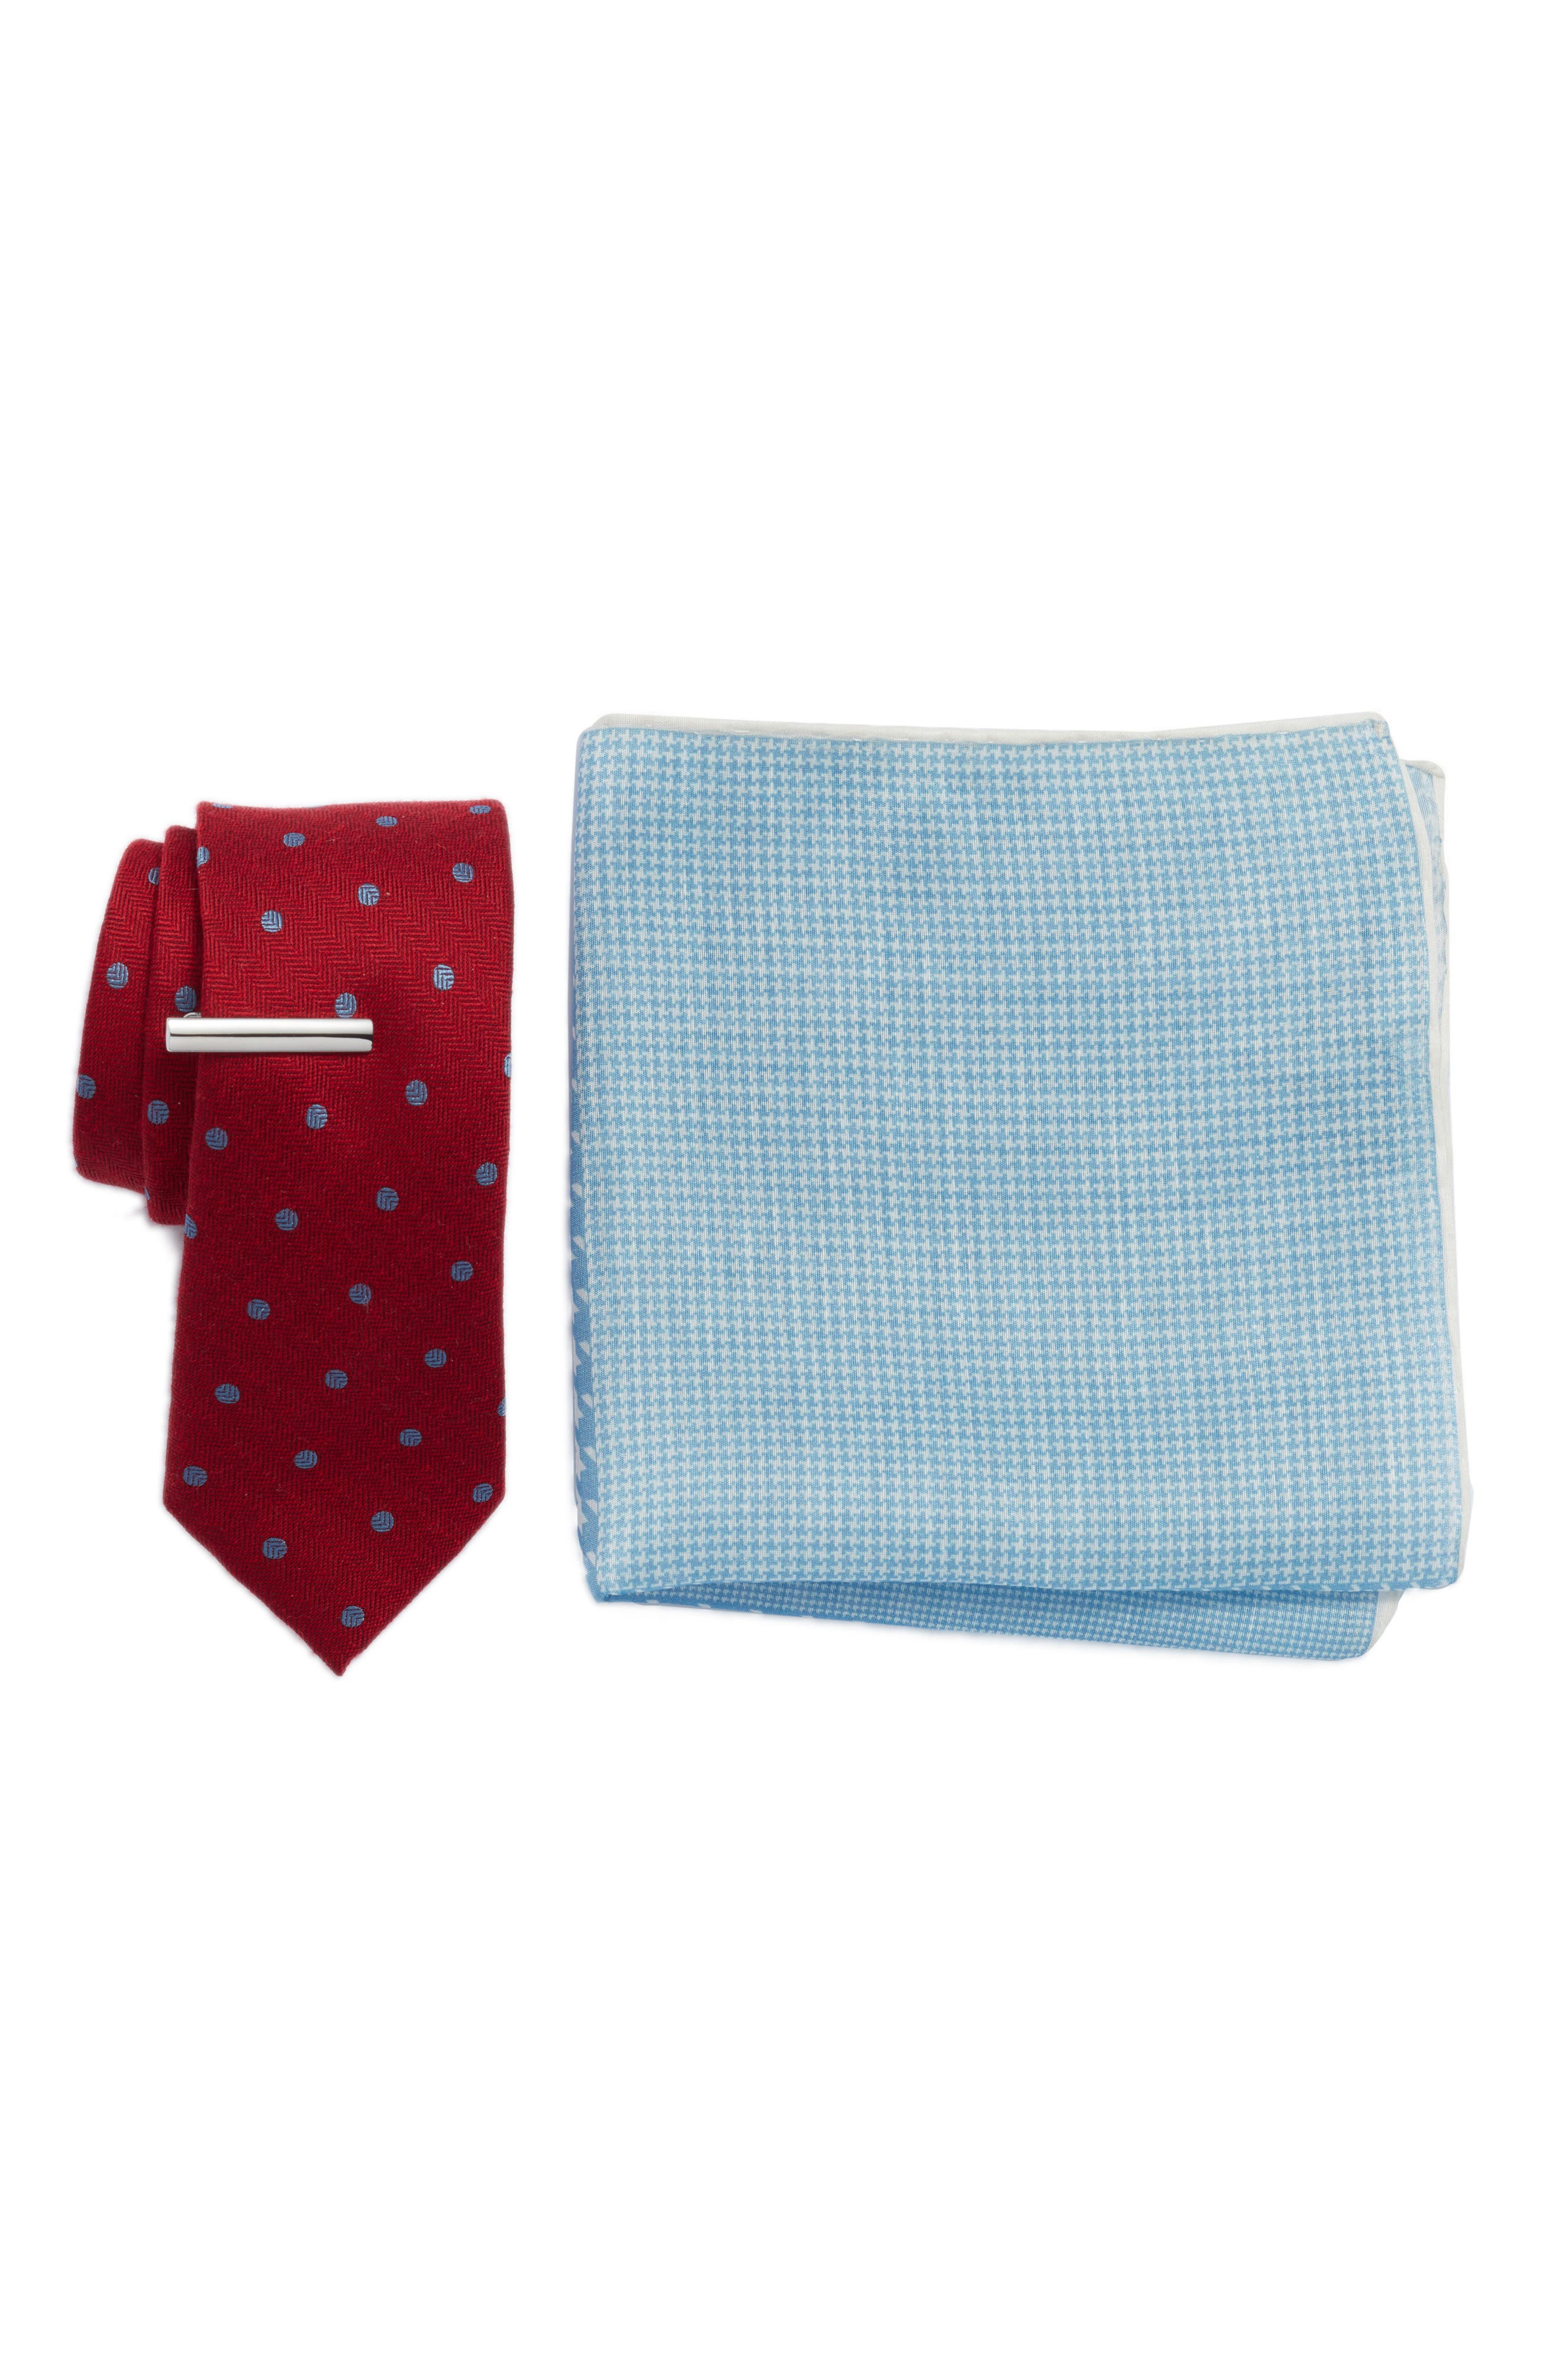 Dotted Hitch 3-Piece Skinny Tie Style Box,                             Main thumbnail 1, color,                             BURGUNDY